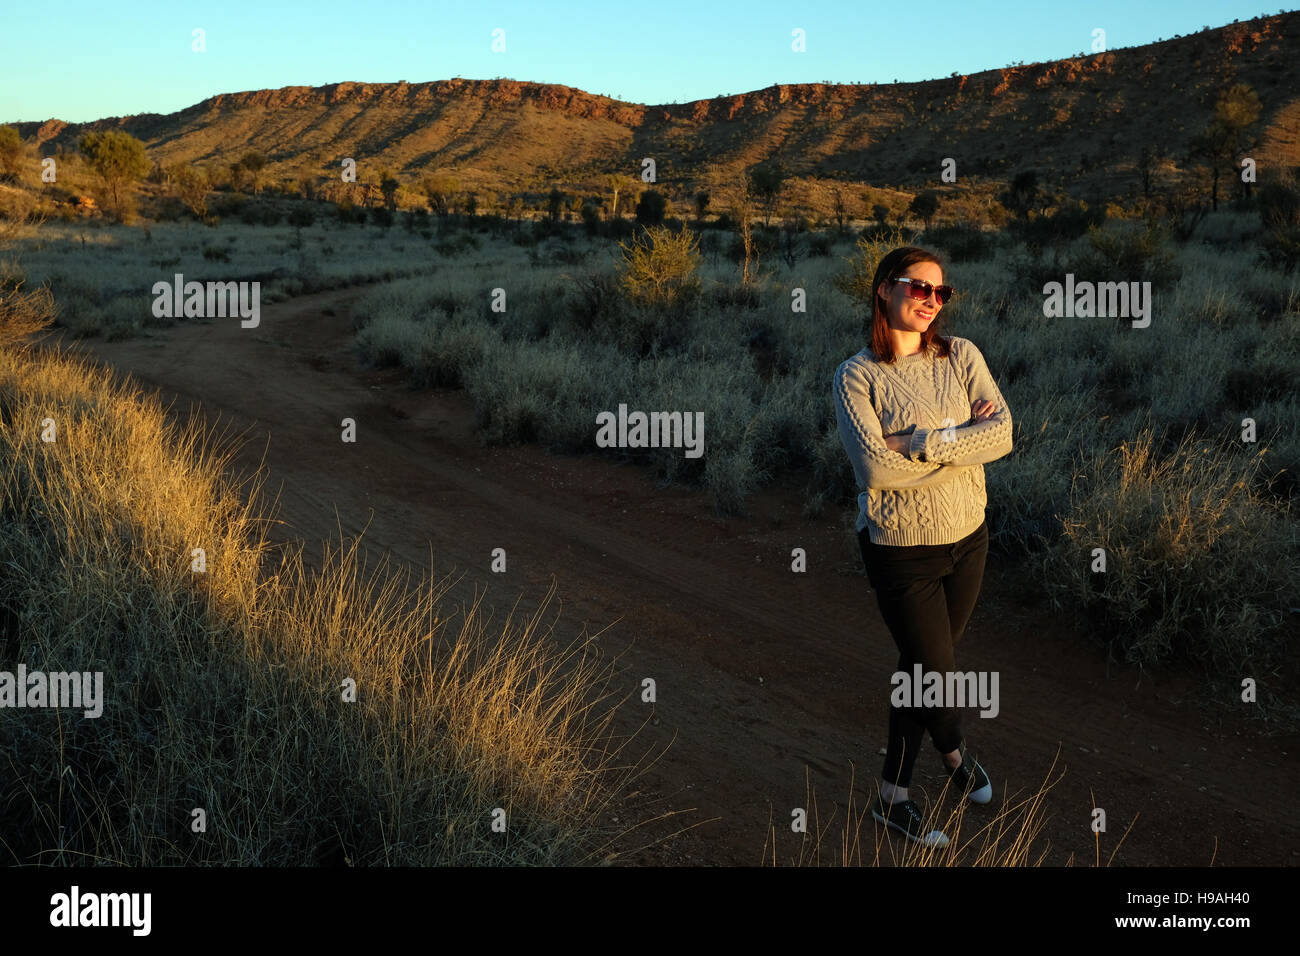 A woman watches the sunset in the MacDonnell Ranges, Alice Springs, Northern Territory, Central Australia - Stock Image